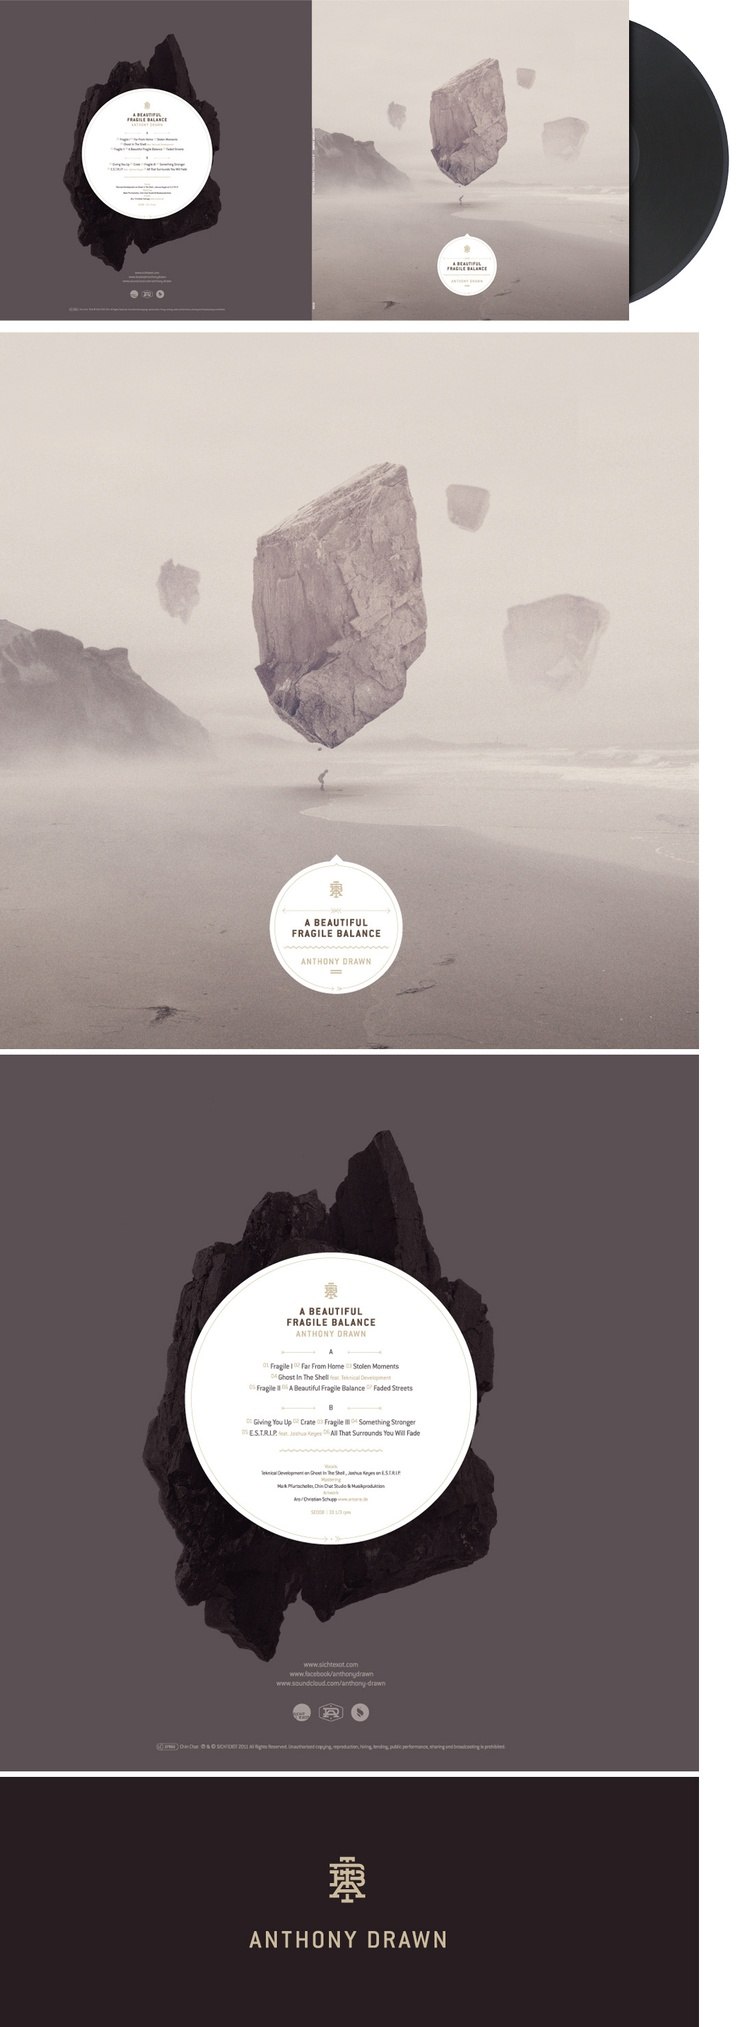 ARO / Christian Schupp - A beautiful fragile balance LP cover (Anthony Drawn)